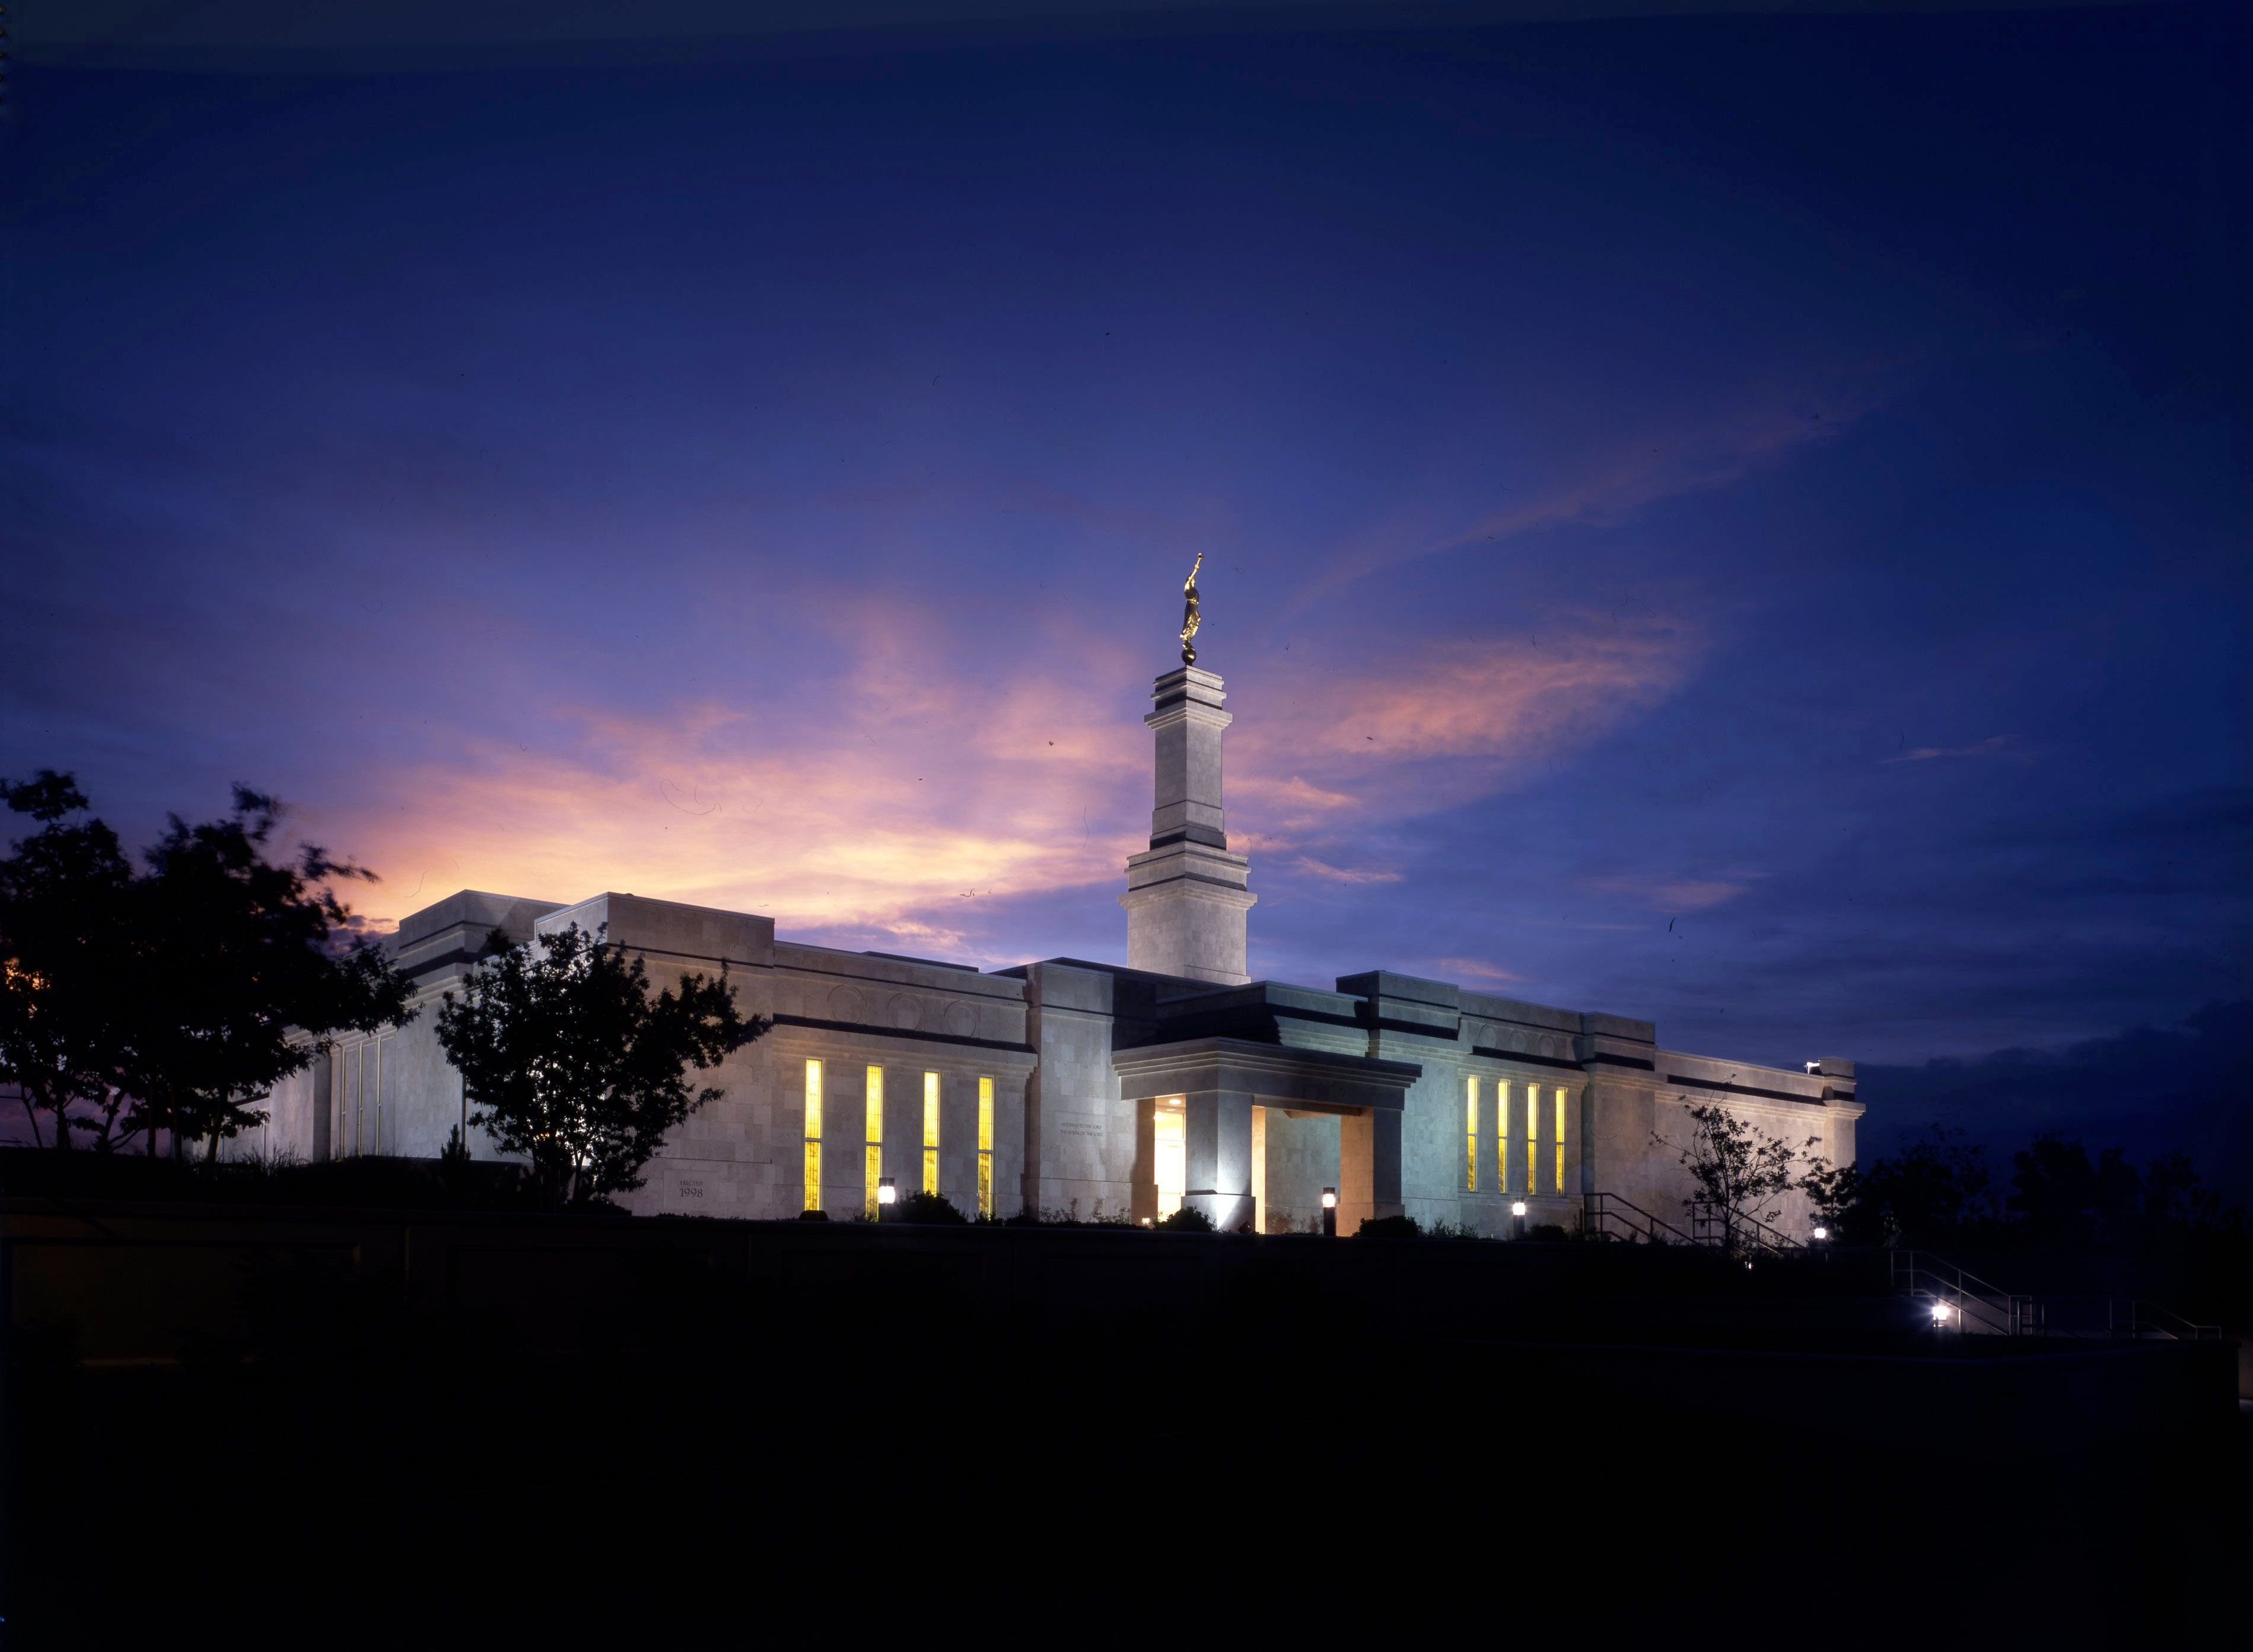 The Monticello Utah Temple in the evening, including scenery.